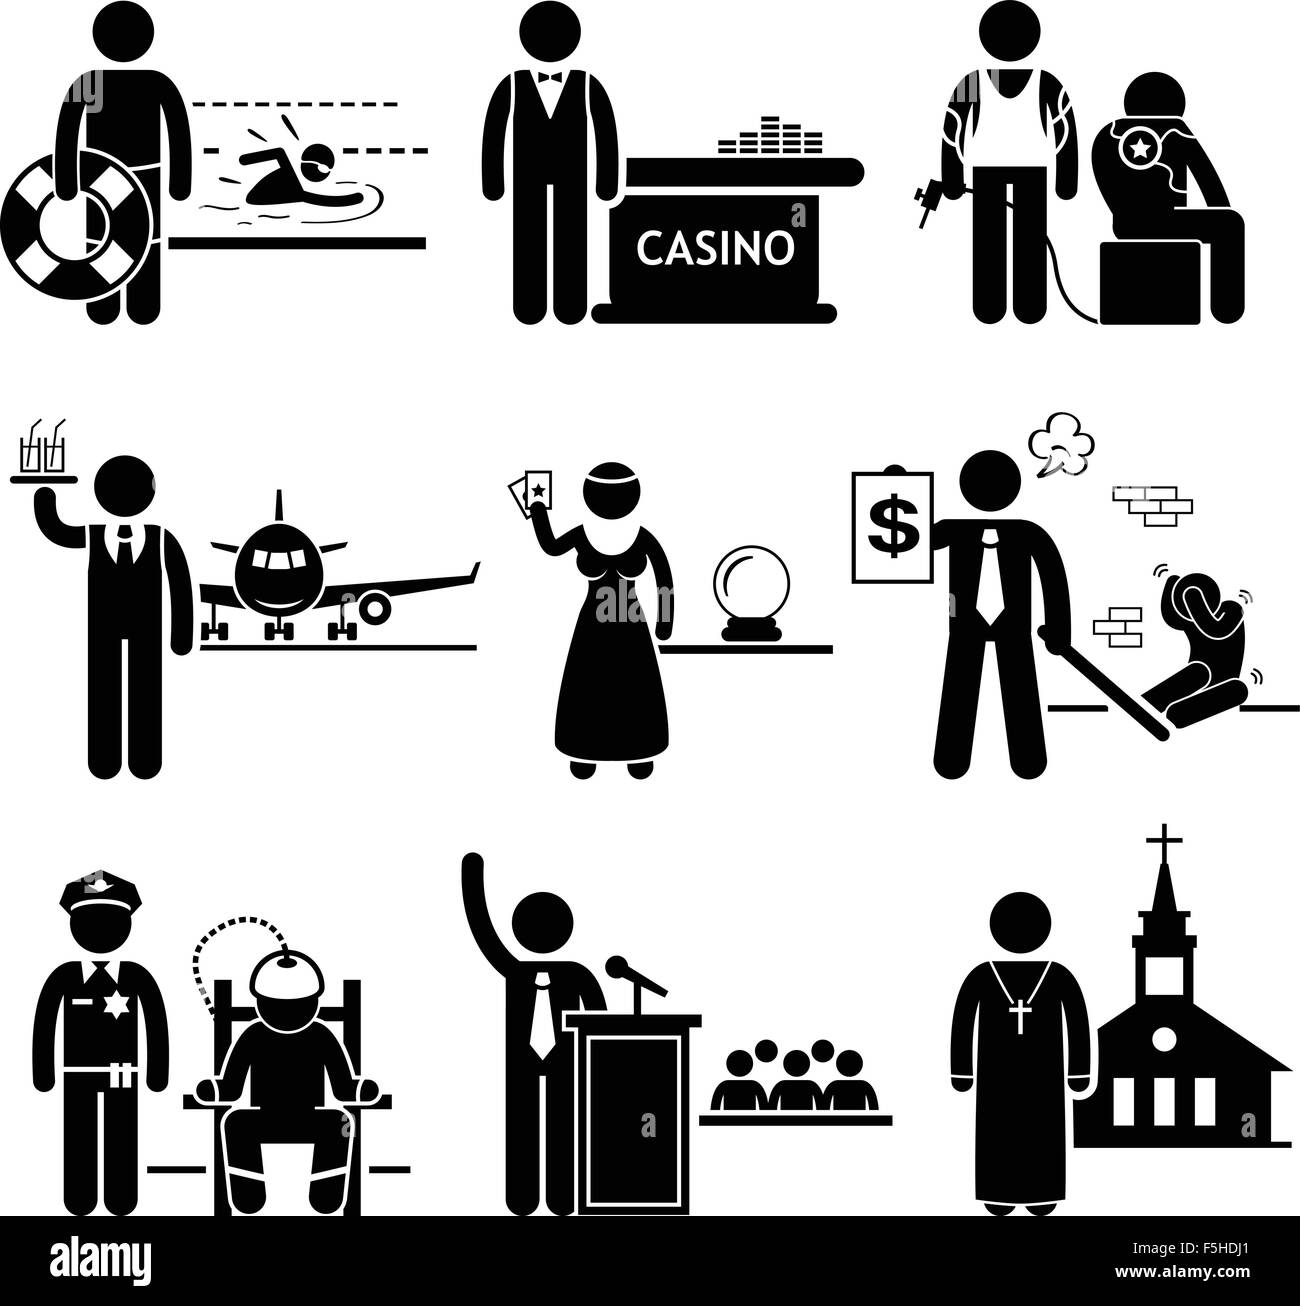 Special Jobs Occupations Careers - Swimming Lifeguard, Casino Dealer, Tattoo Artist, Air Steward, Fortune Teller, - Stock Image